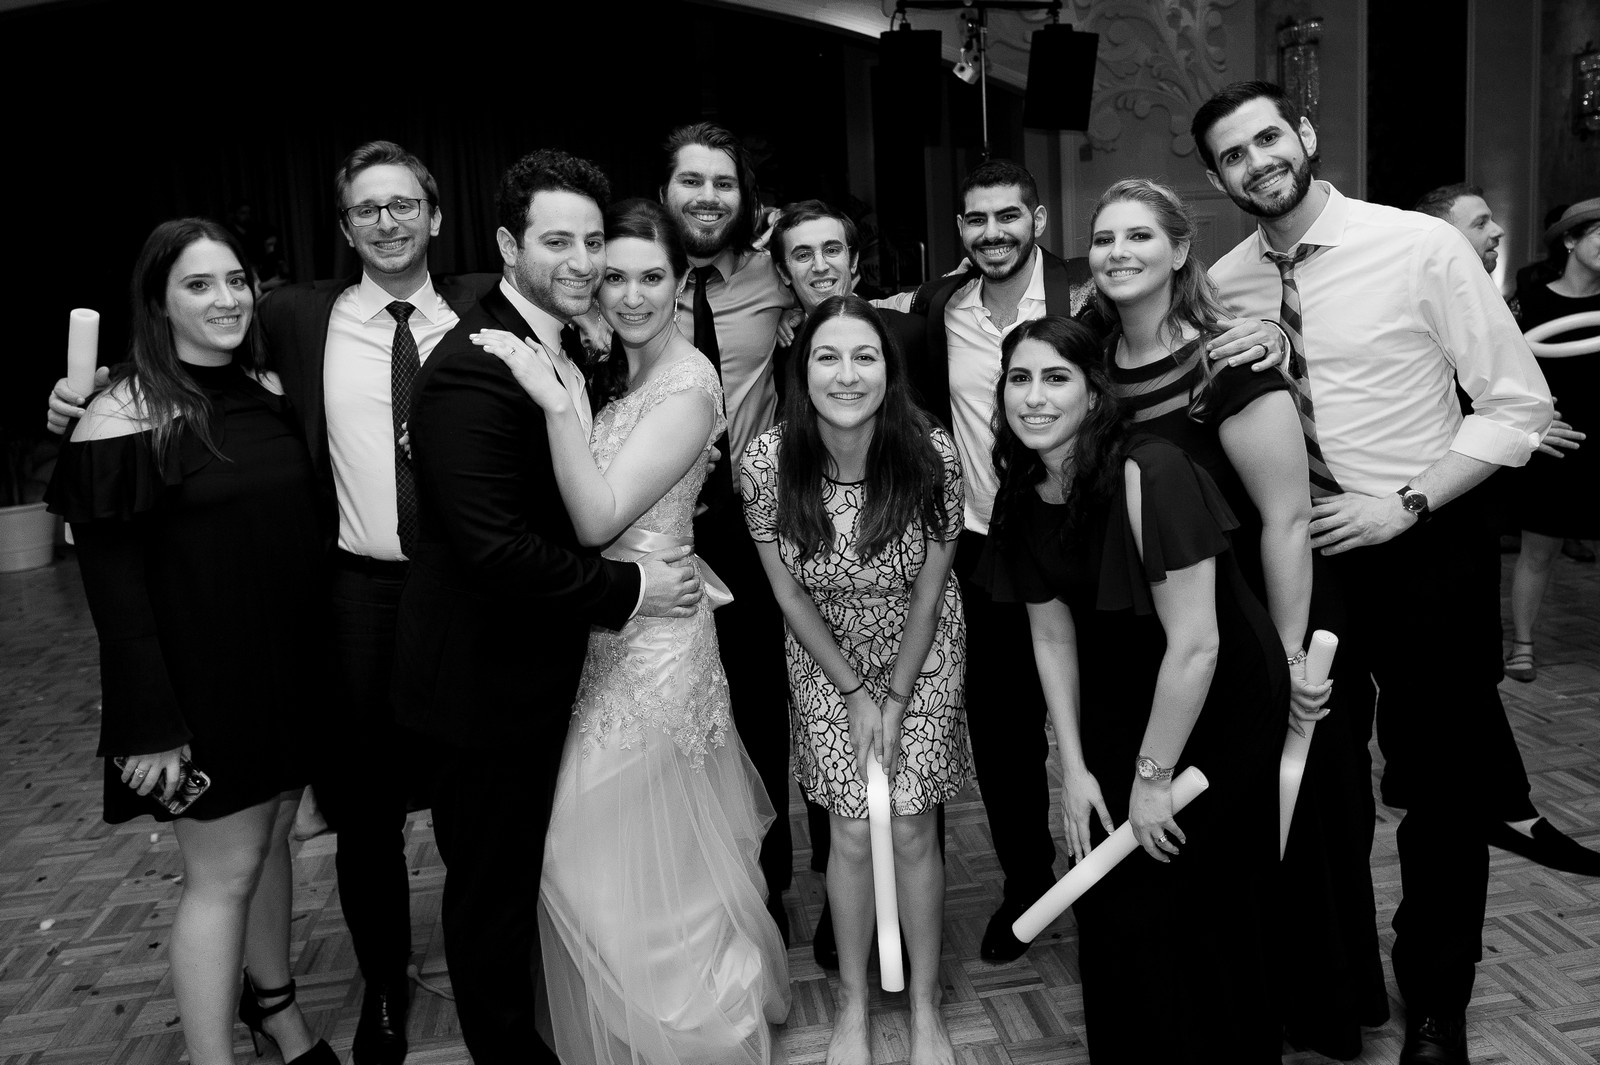 Yoey and Aaron's Memorial Day Modern Jewish Wedding at Anthony's Pier 9, New Windsor, NY Photos by Chaim Schvarcz